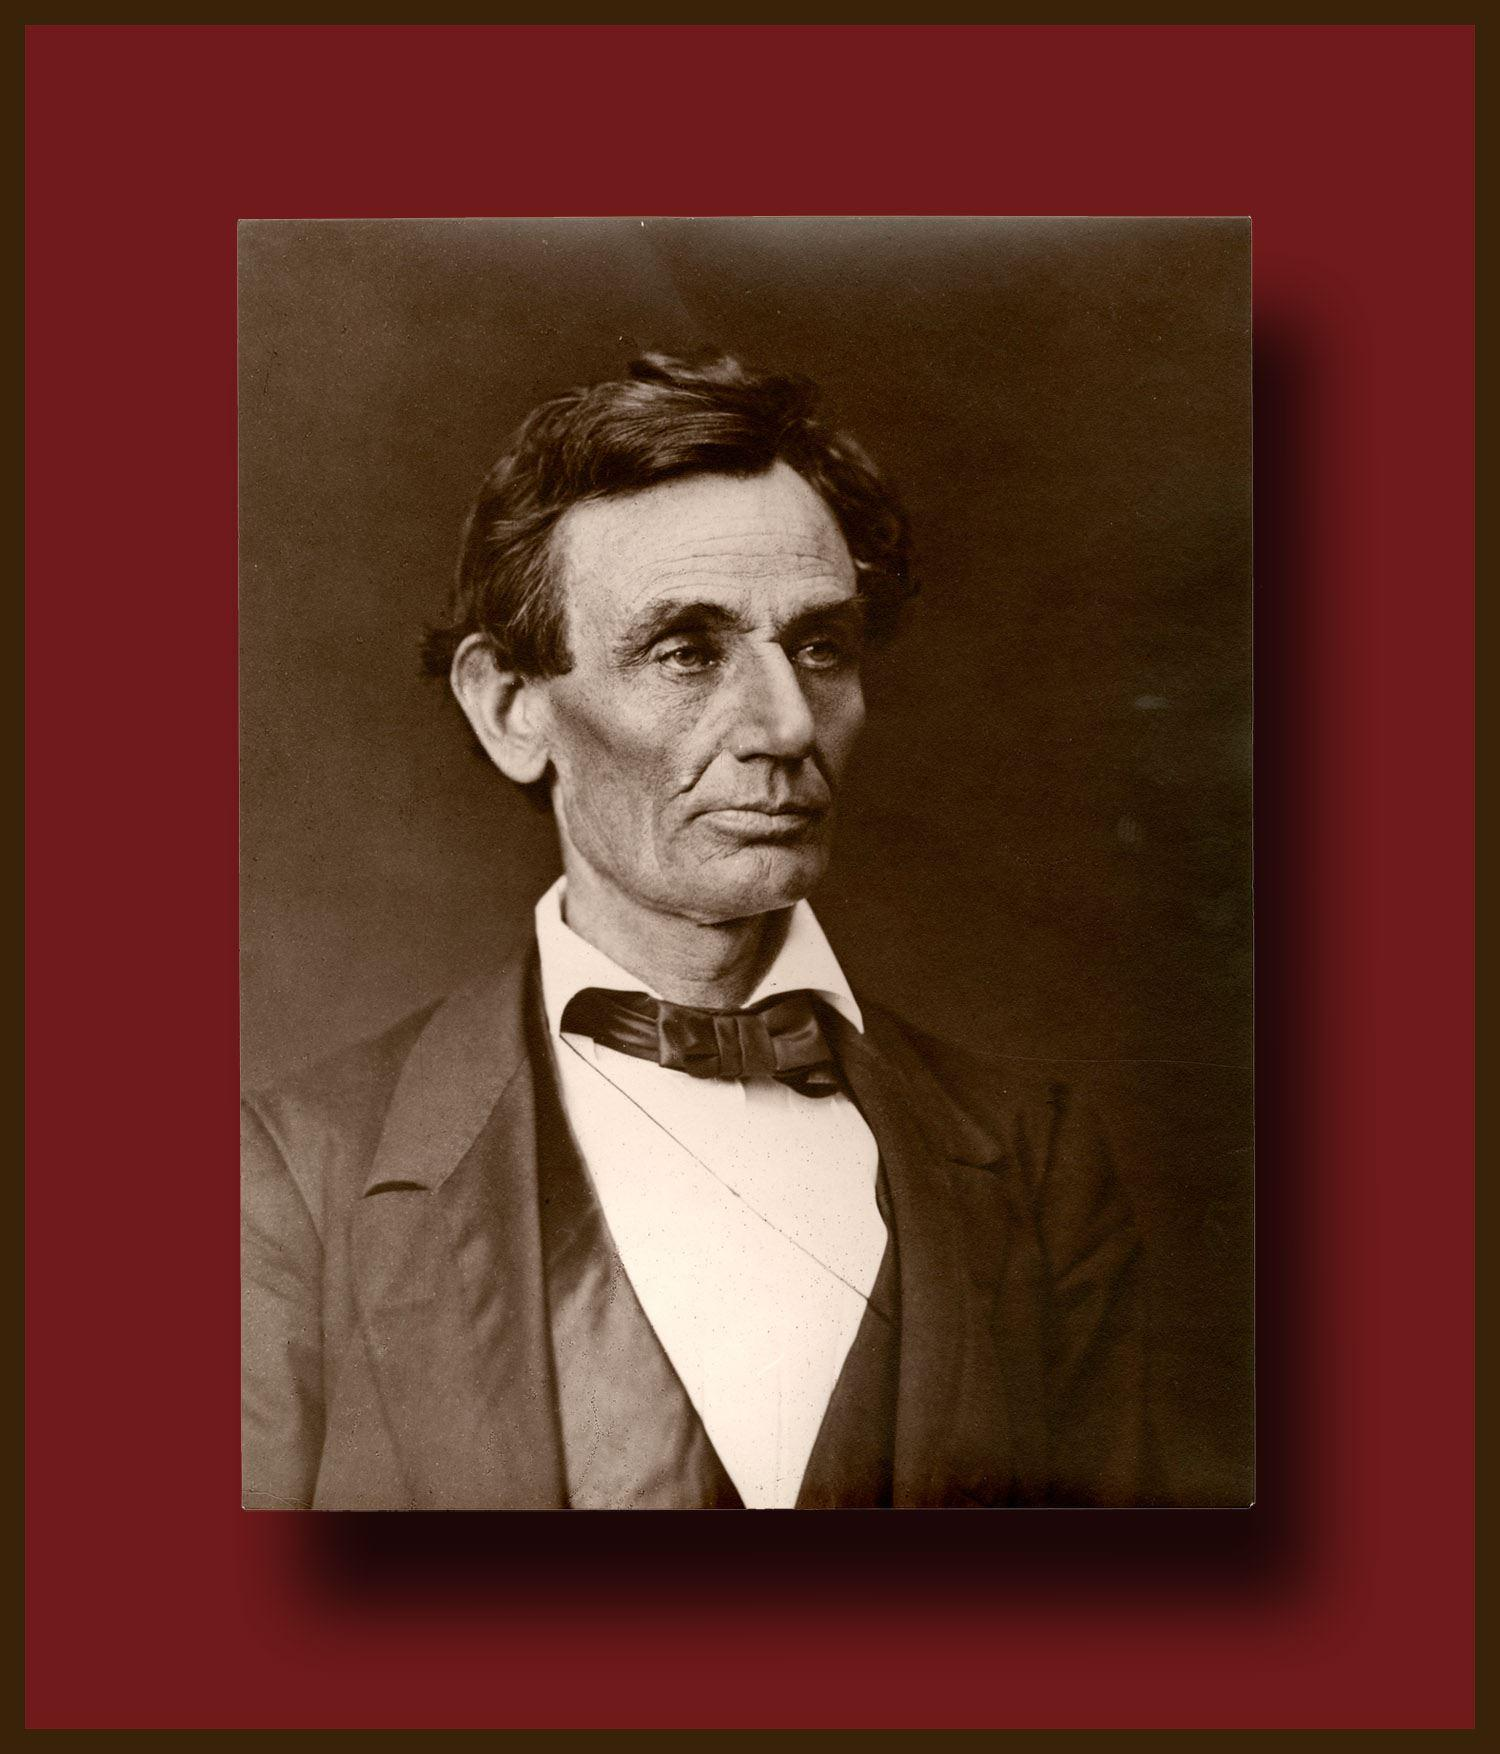 Large Photograph of Abraham Lincoln from negative made by Alexander Hesler in 1860